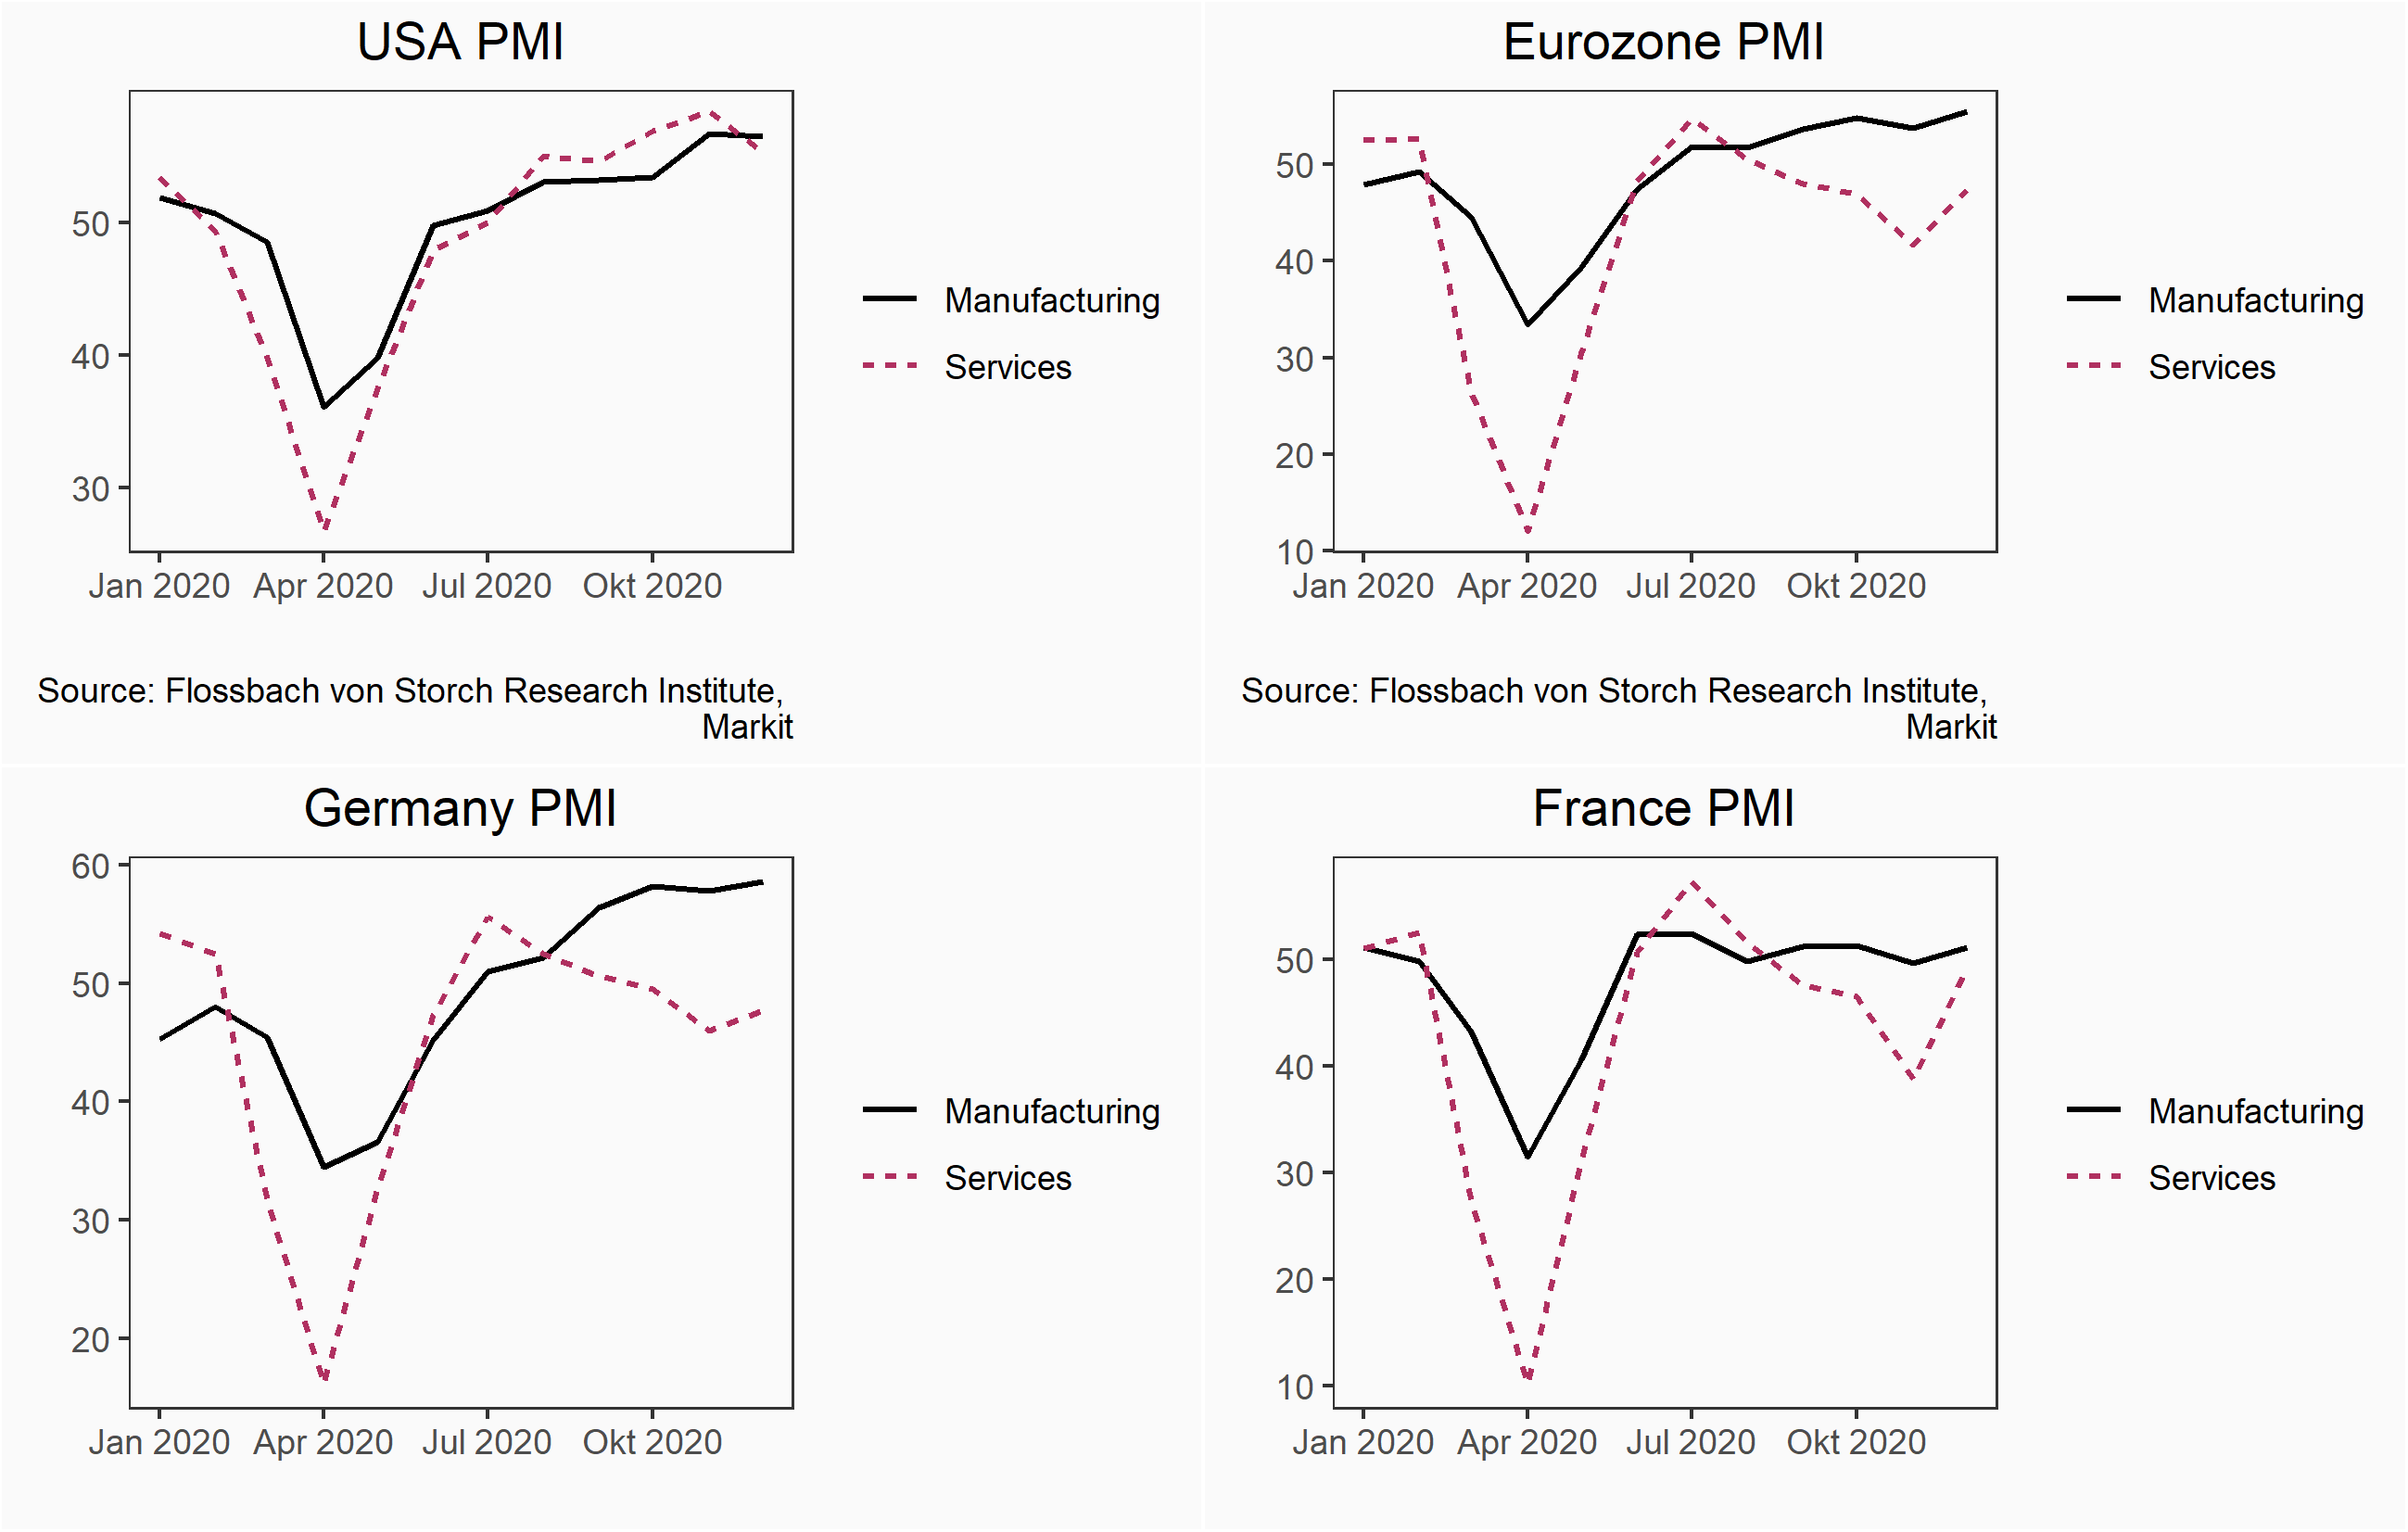 https://www.flossbachvonstorch-researchinstitute.com/fileadmin/_processed_/b/4/csm_201217_fig3_pmi_all_m_s_757462fcc5.png